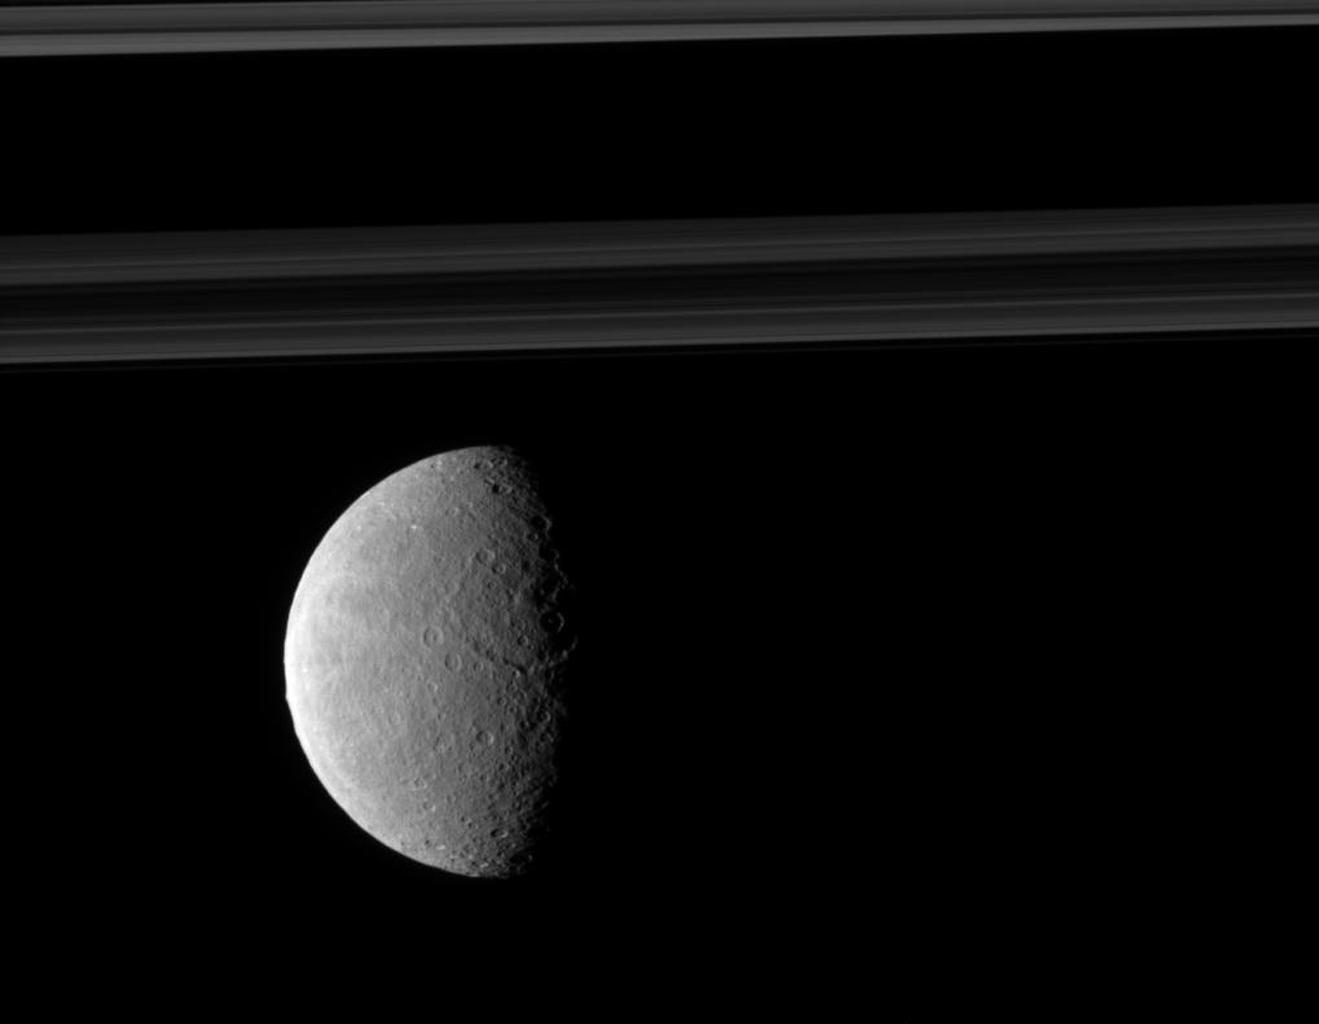 Rhea's trailing hemisphere shows off its wispy terrain on the left of this image taken by NASA's Cassini spacecraft which includes Saturn's rings in the distance.